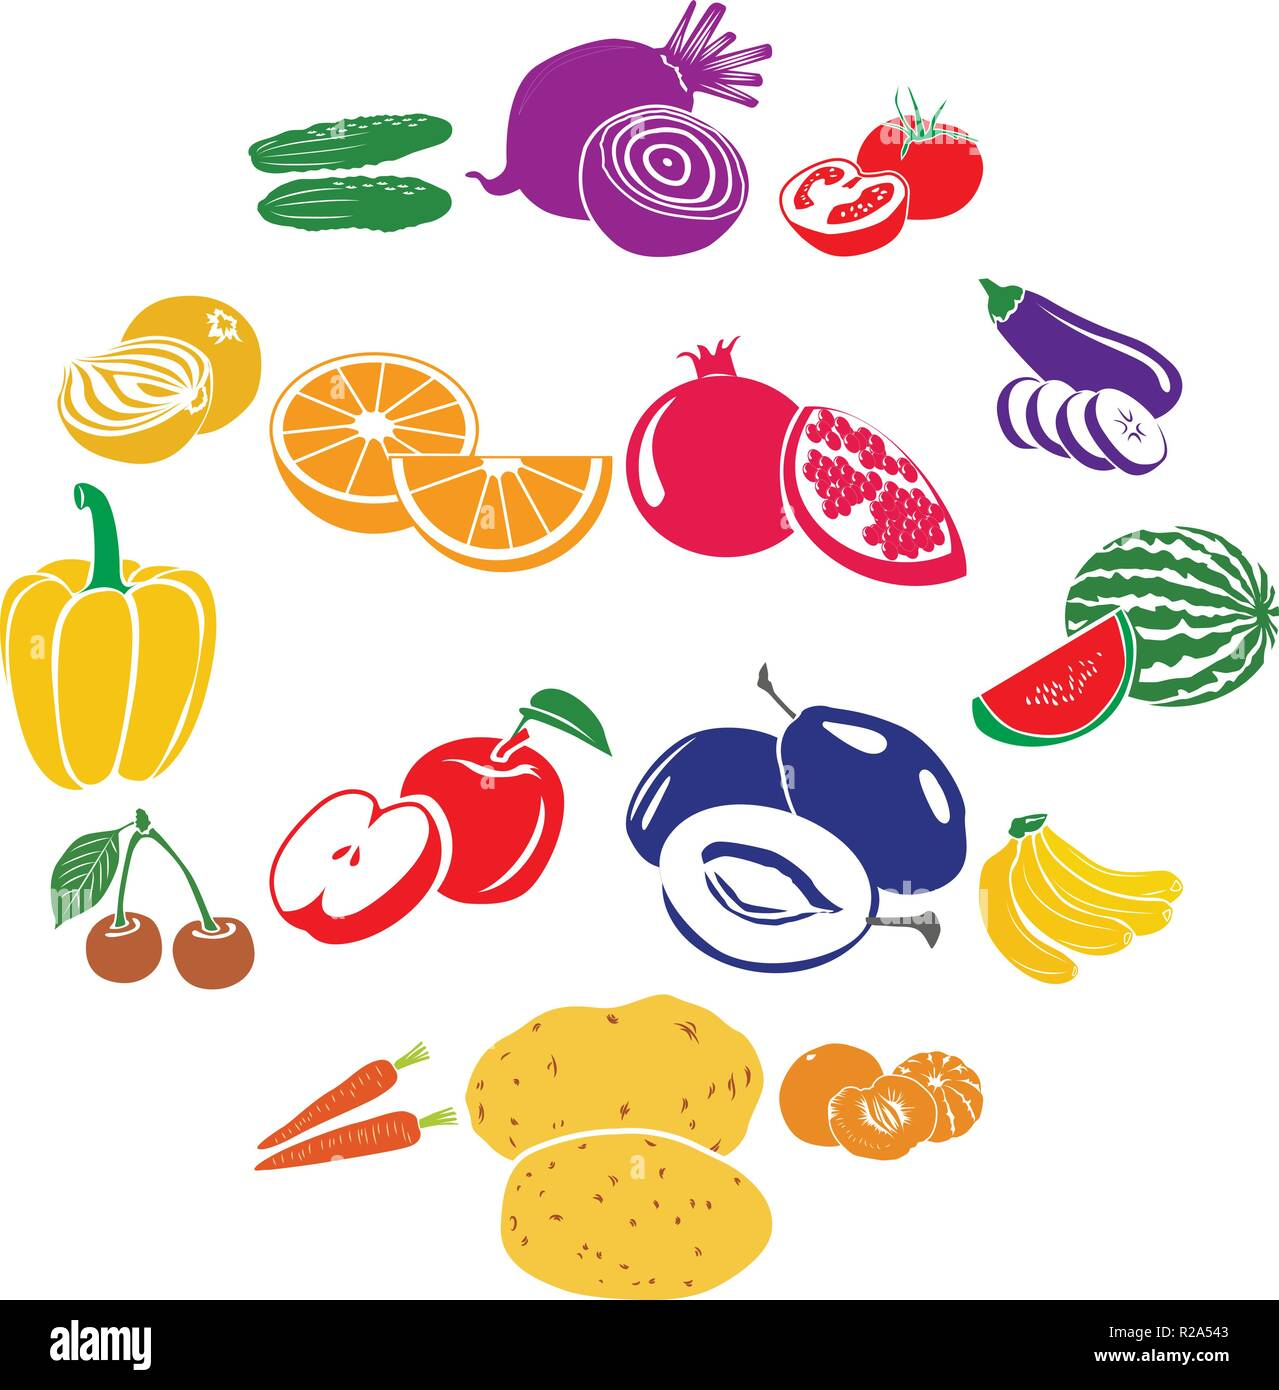 Fruits and vegetables set icons in simple style isolated on white - Stock Vector